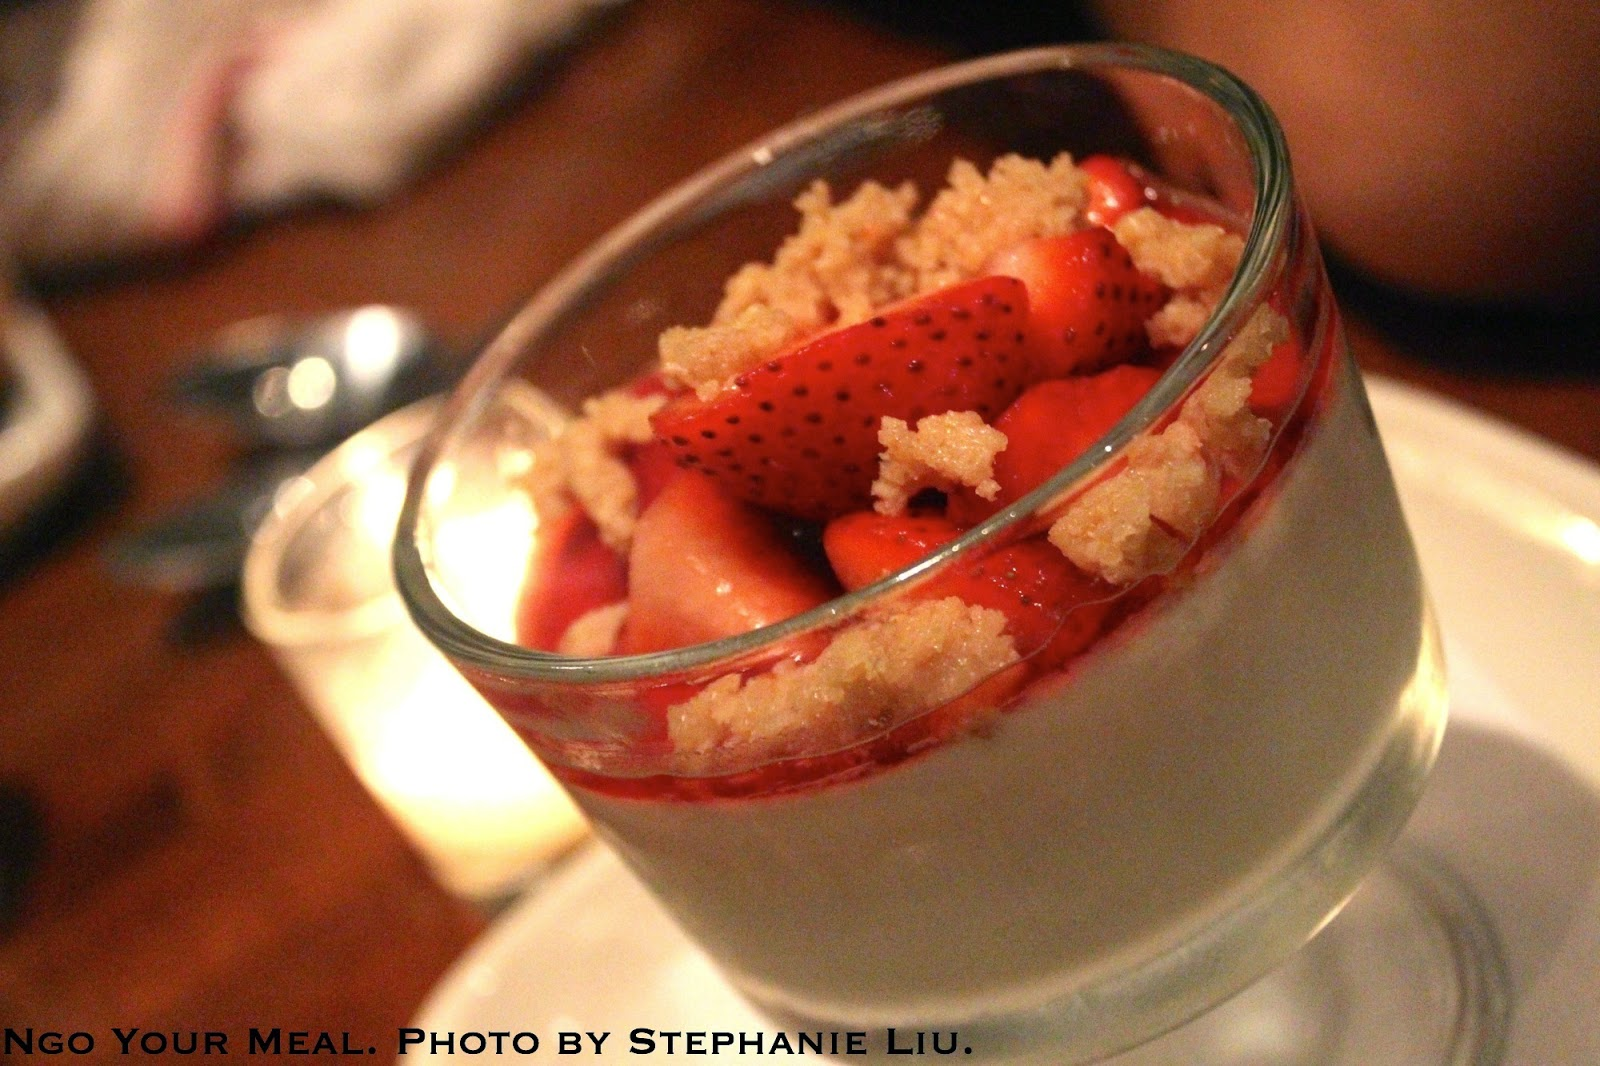 Honey Panna Cotta: greek yogurt, strawberry consommé, red berries, and sea salt brittle at Jane